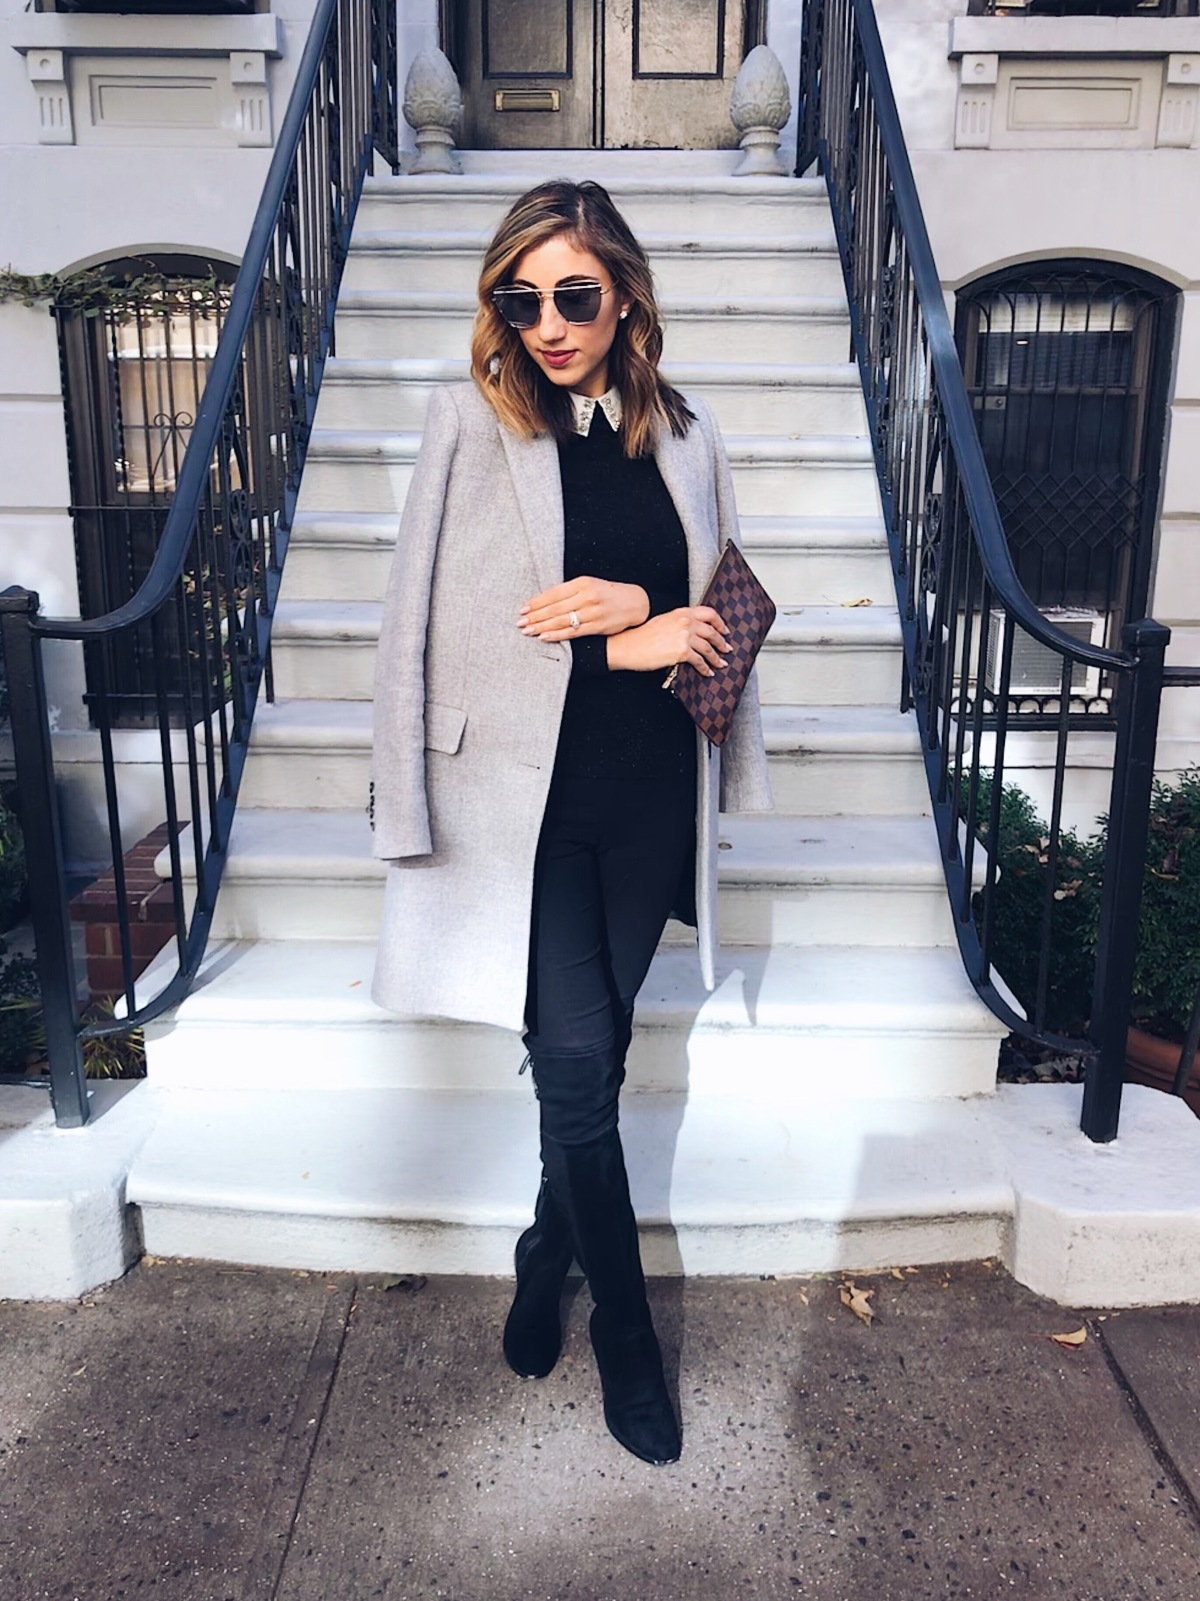 Zara-coat-holiday-holidays-thanksgiving-style-fashion-dressy-casual-office party-glam-chic